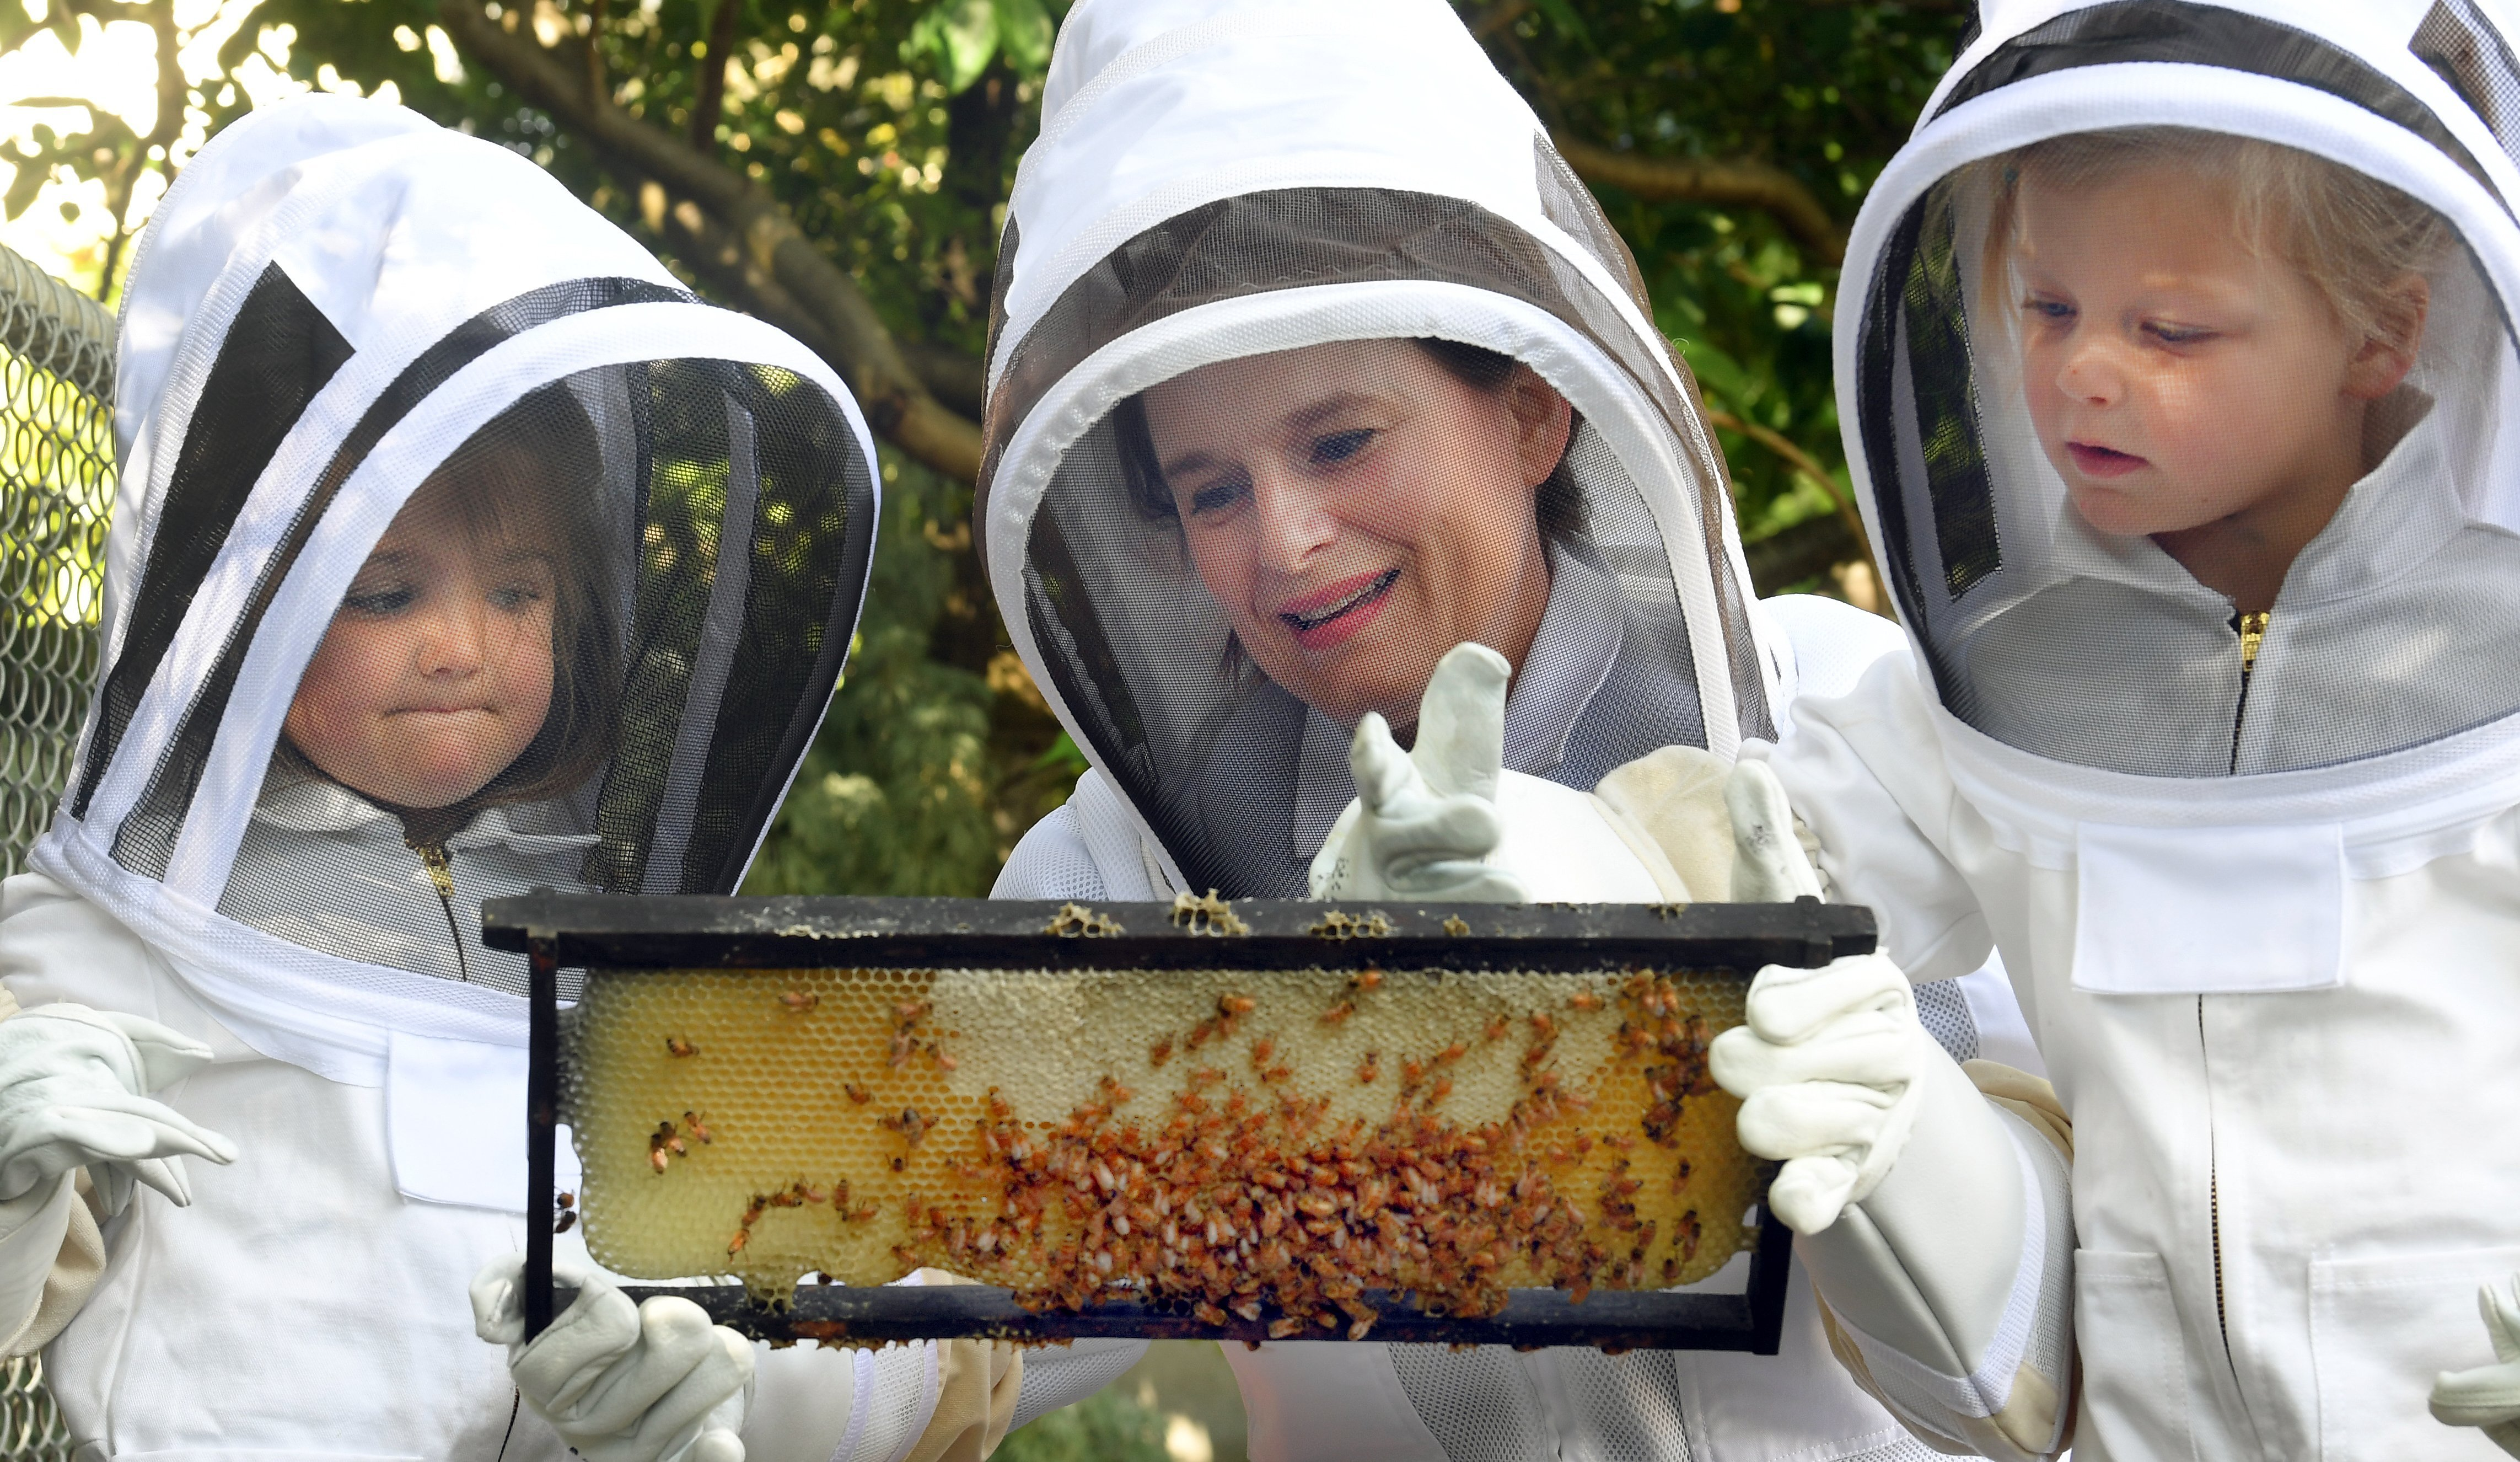 Bayfield Kindergarten teacher Rae Shurbutt examines a frame of honeycomb and its bees, closely...